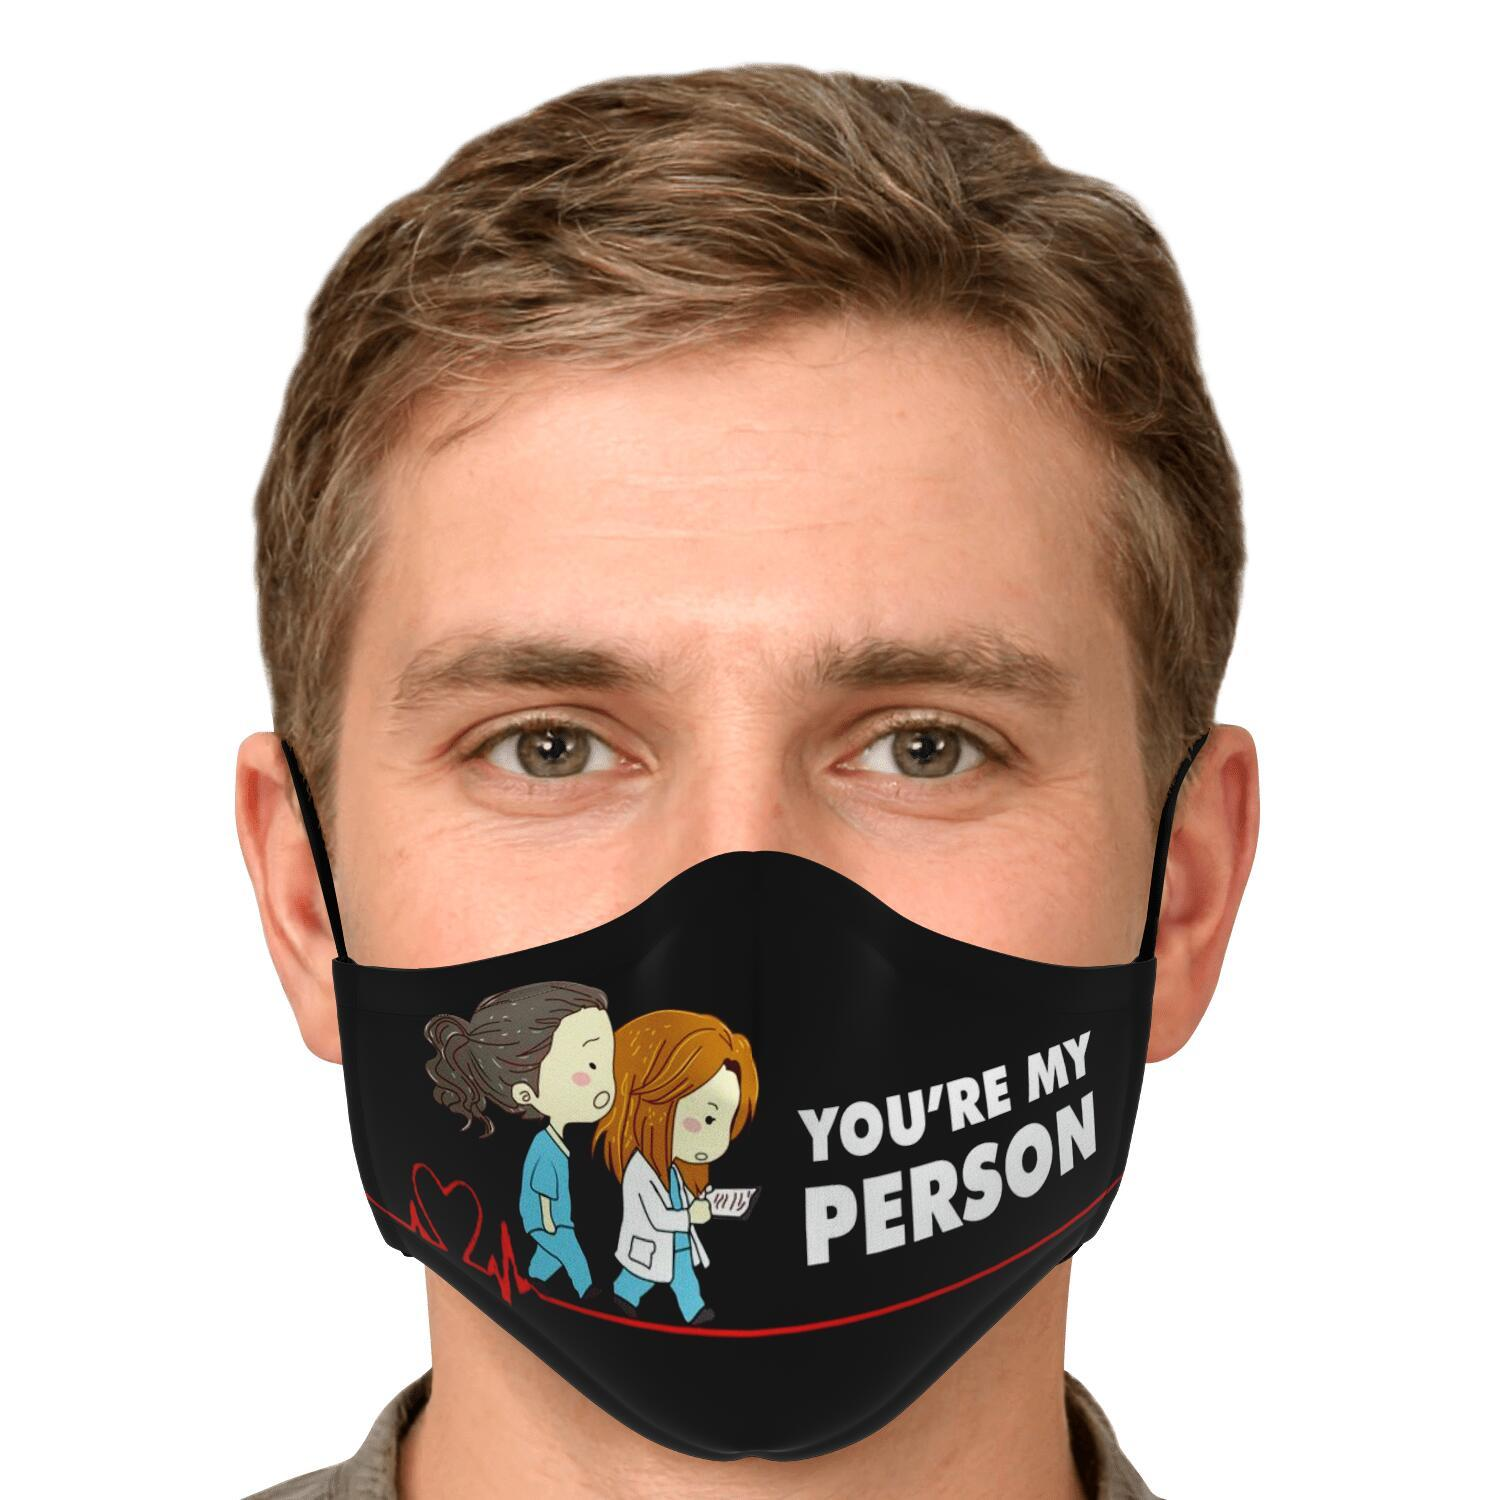 You're My Person Grey's Anatomy Face Mask 4